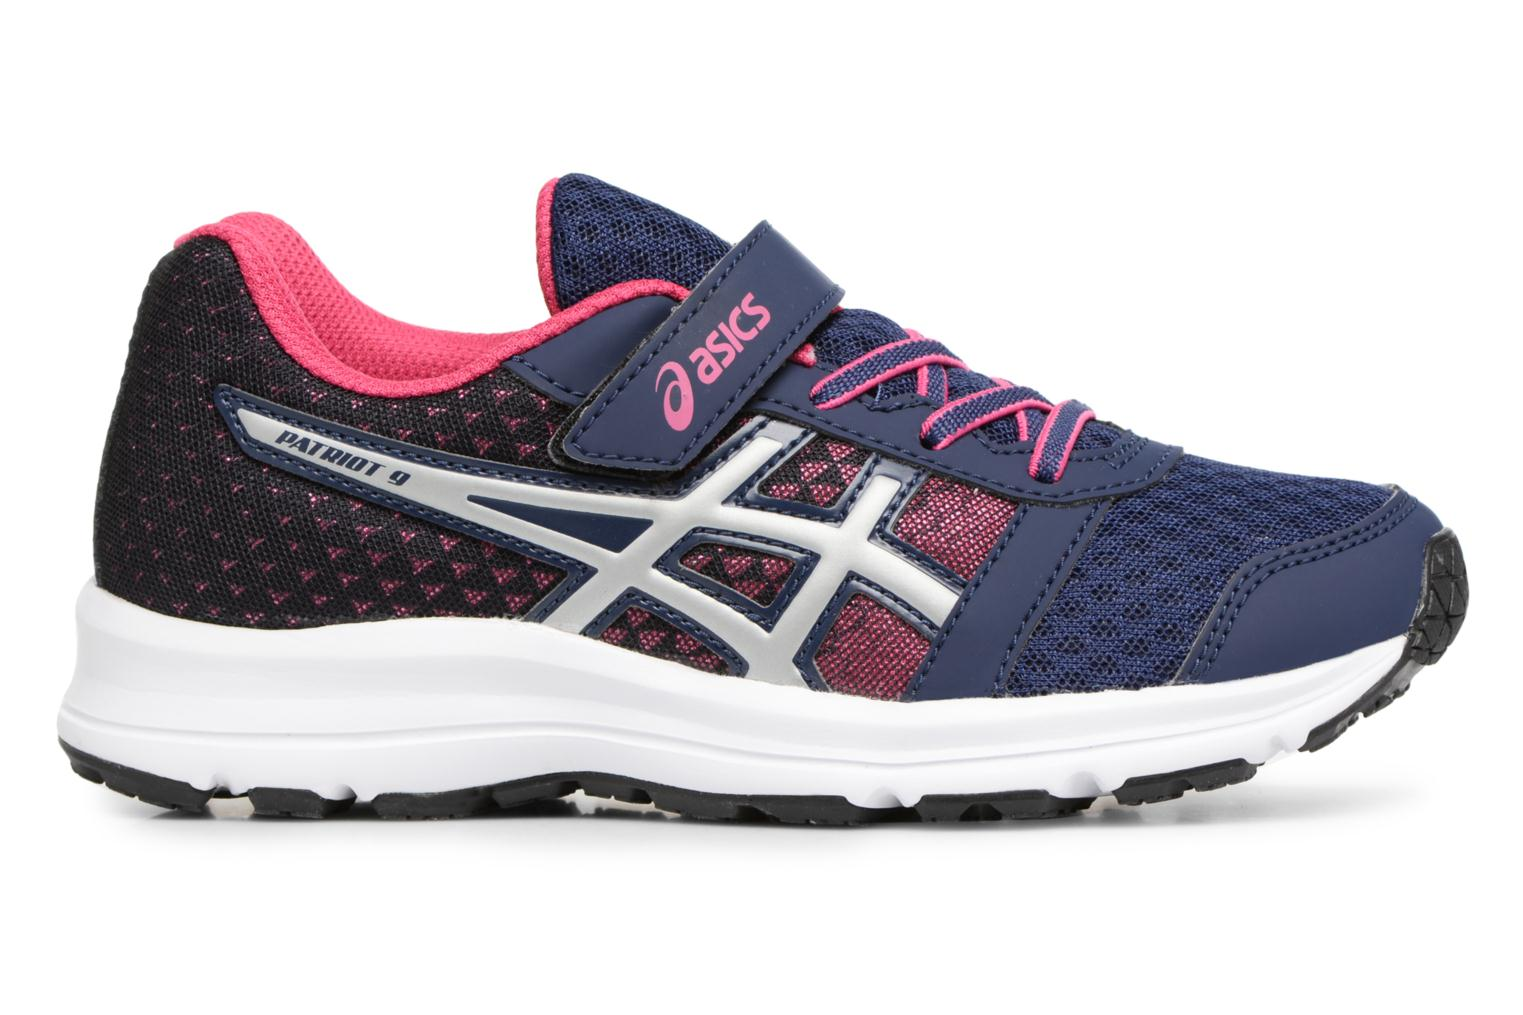 9 Purple Fuchsia Blue Indigo PS Patriot Asics Silver 6w5HUf6q